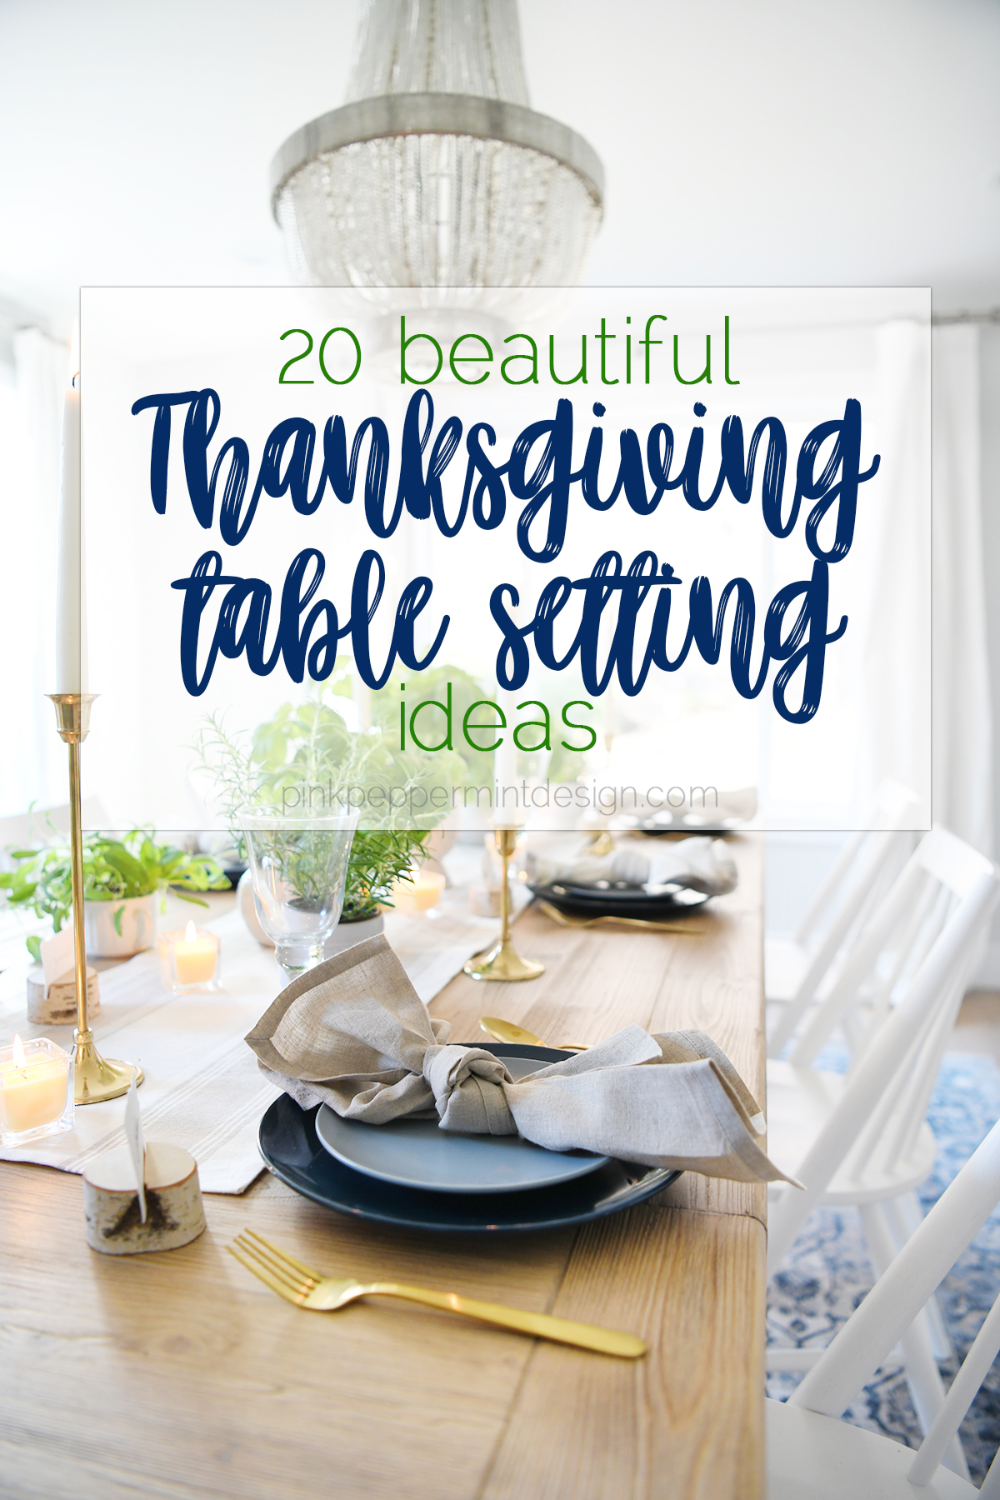 20 Beautiful Thanksgiving Table Settings : Simple Thanksgiving Table Decorations - Pink Peppermint Design #thanksgivingdinnertable